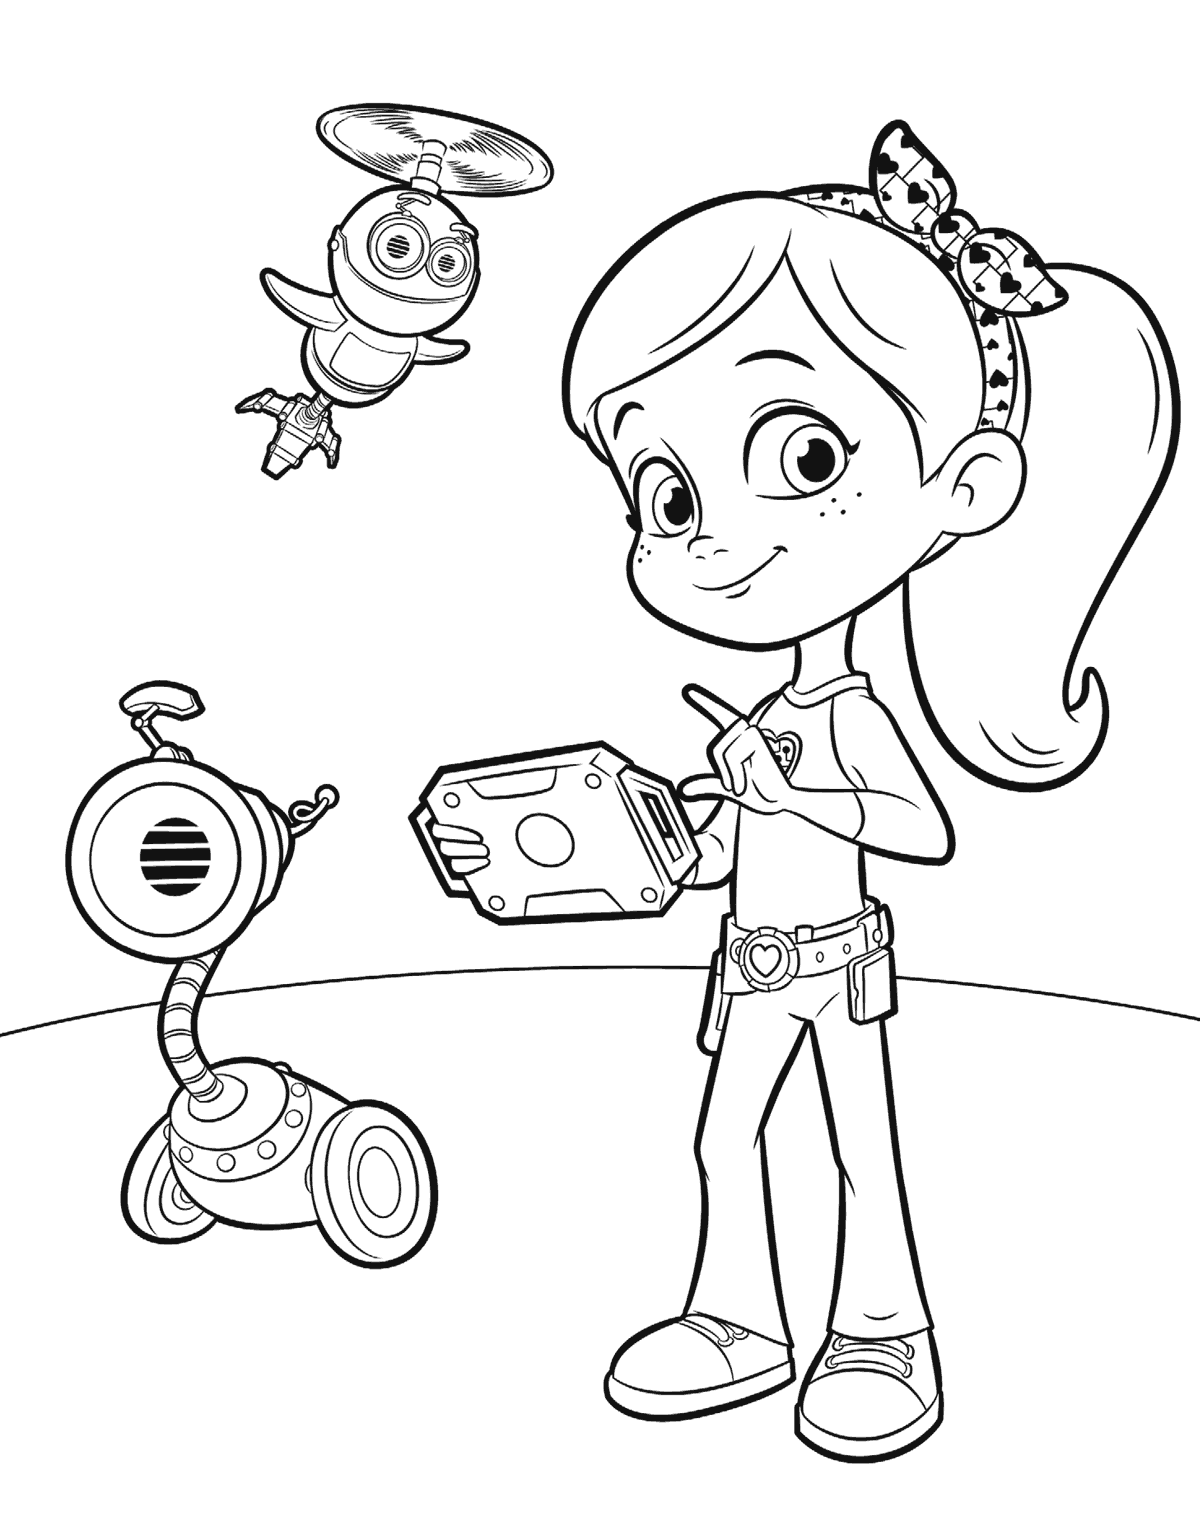 Pin by jiun her on animation characters free printable coloring